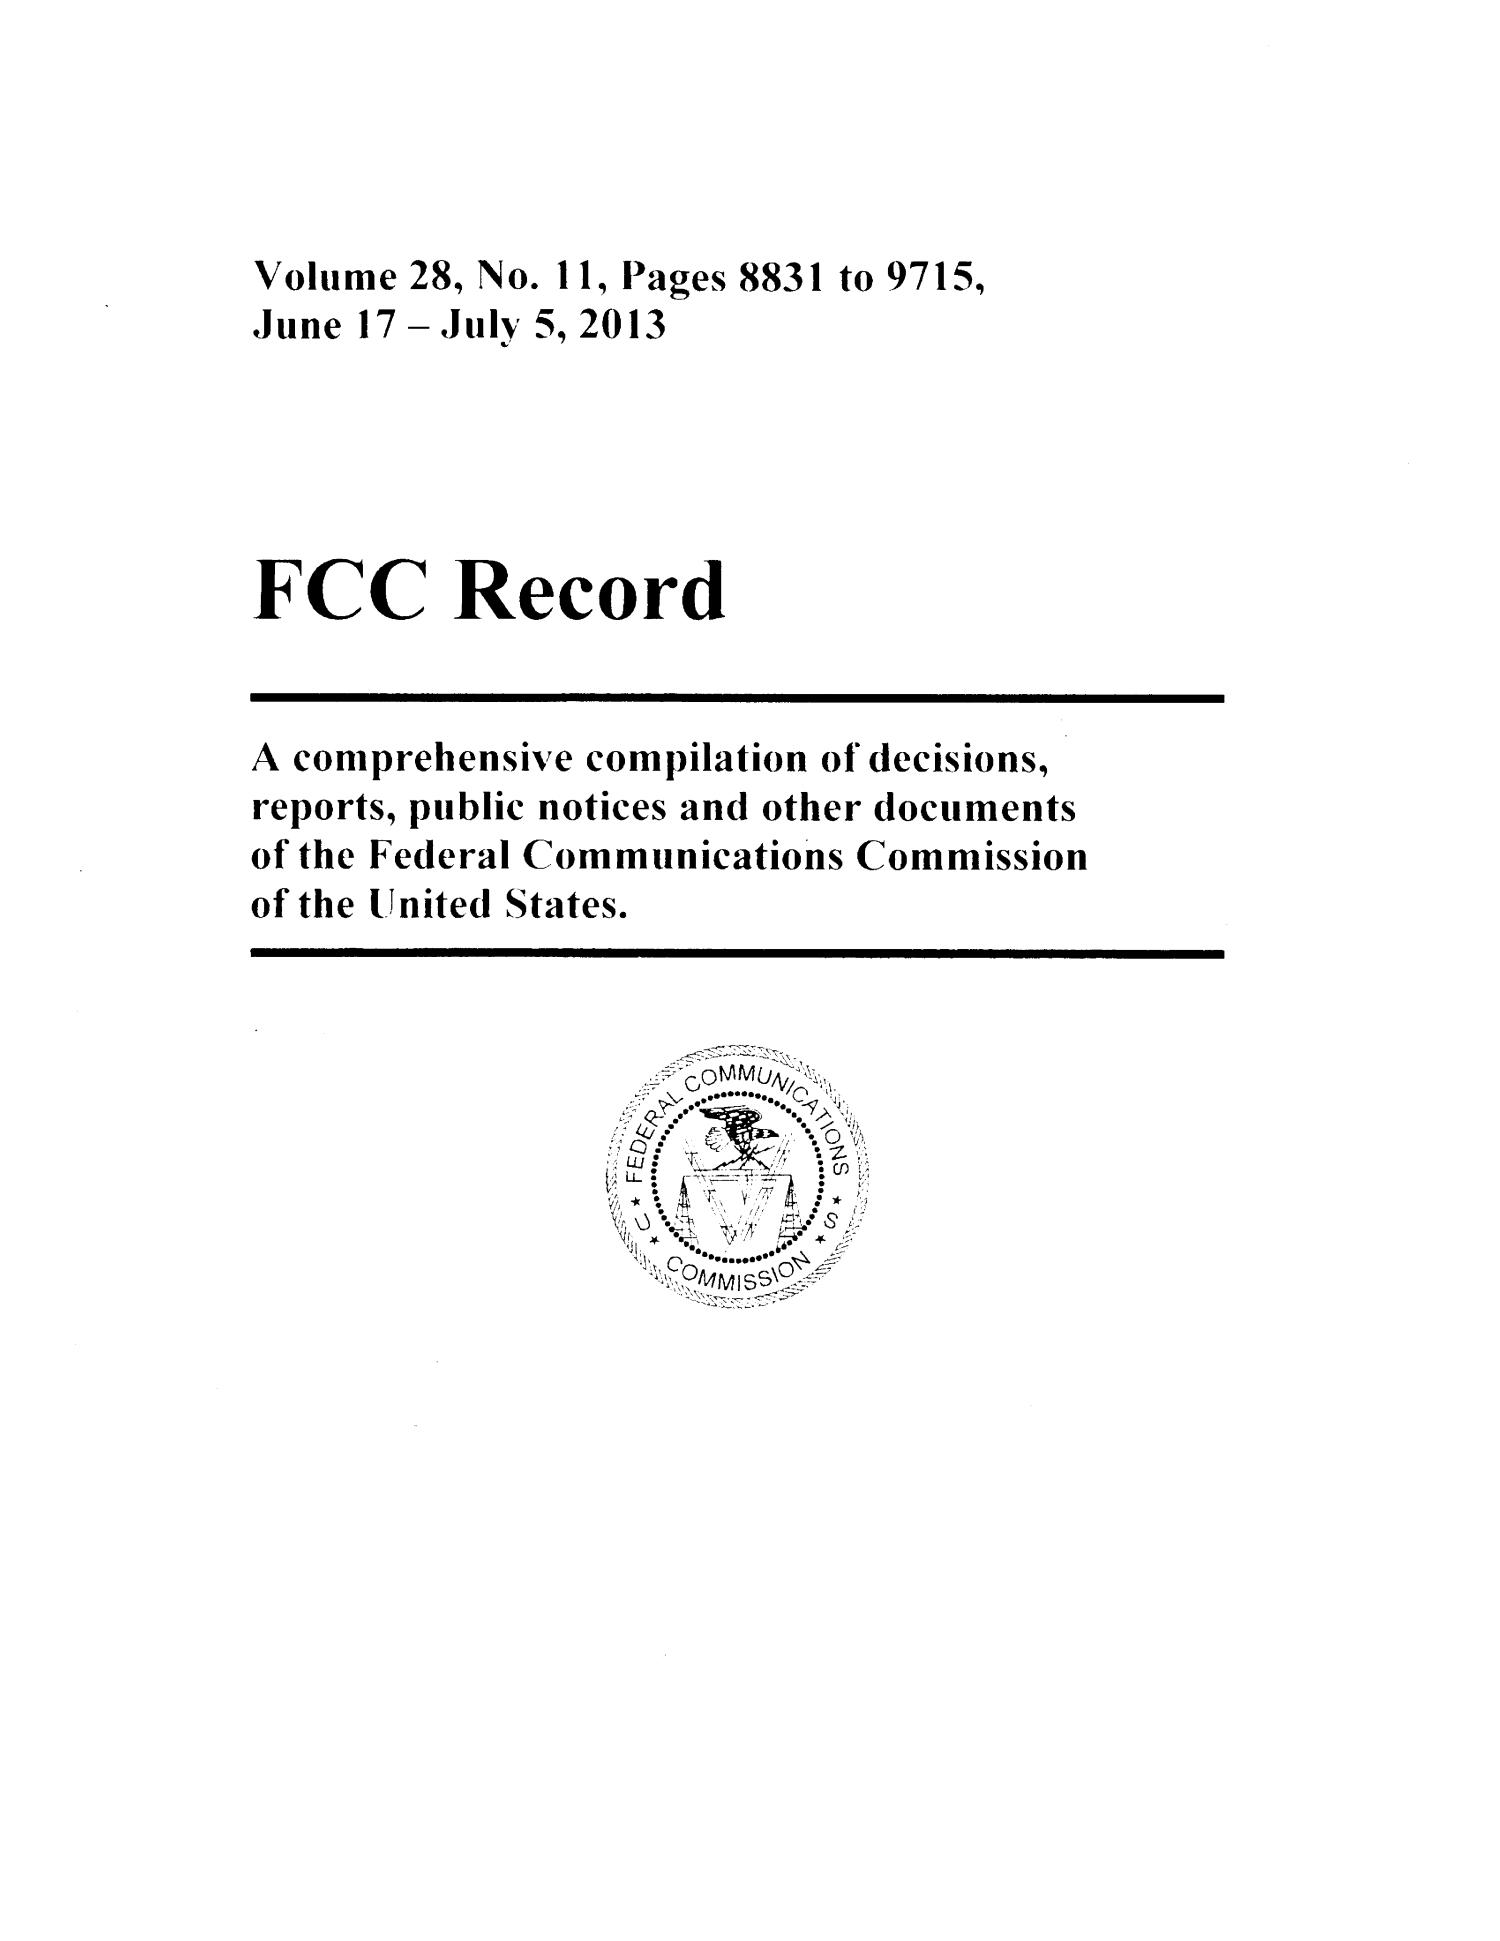 FCC Record, Volume 28, No. 11, Pages 8831 to 9715, June 17 - July 5, 2013                                                                                                      Title Page